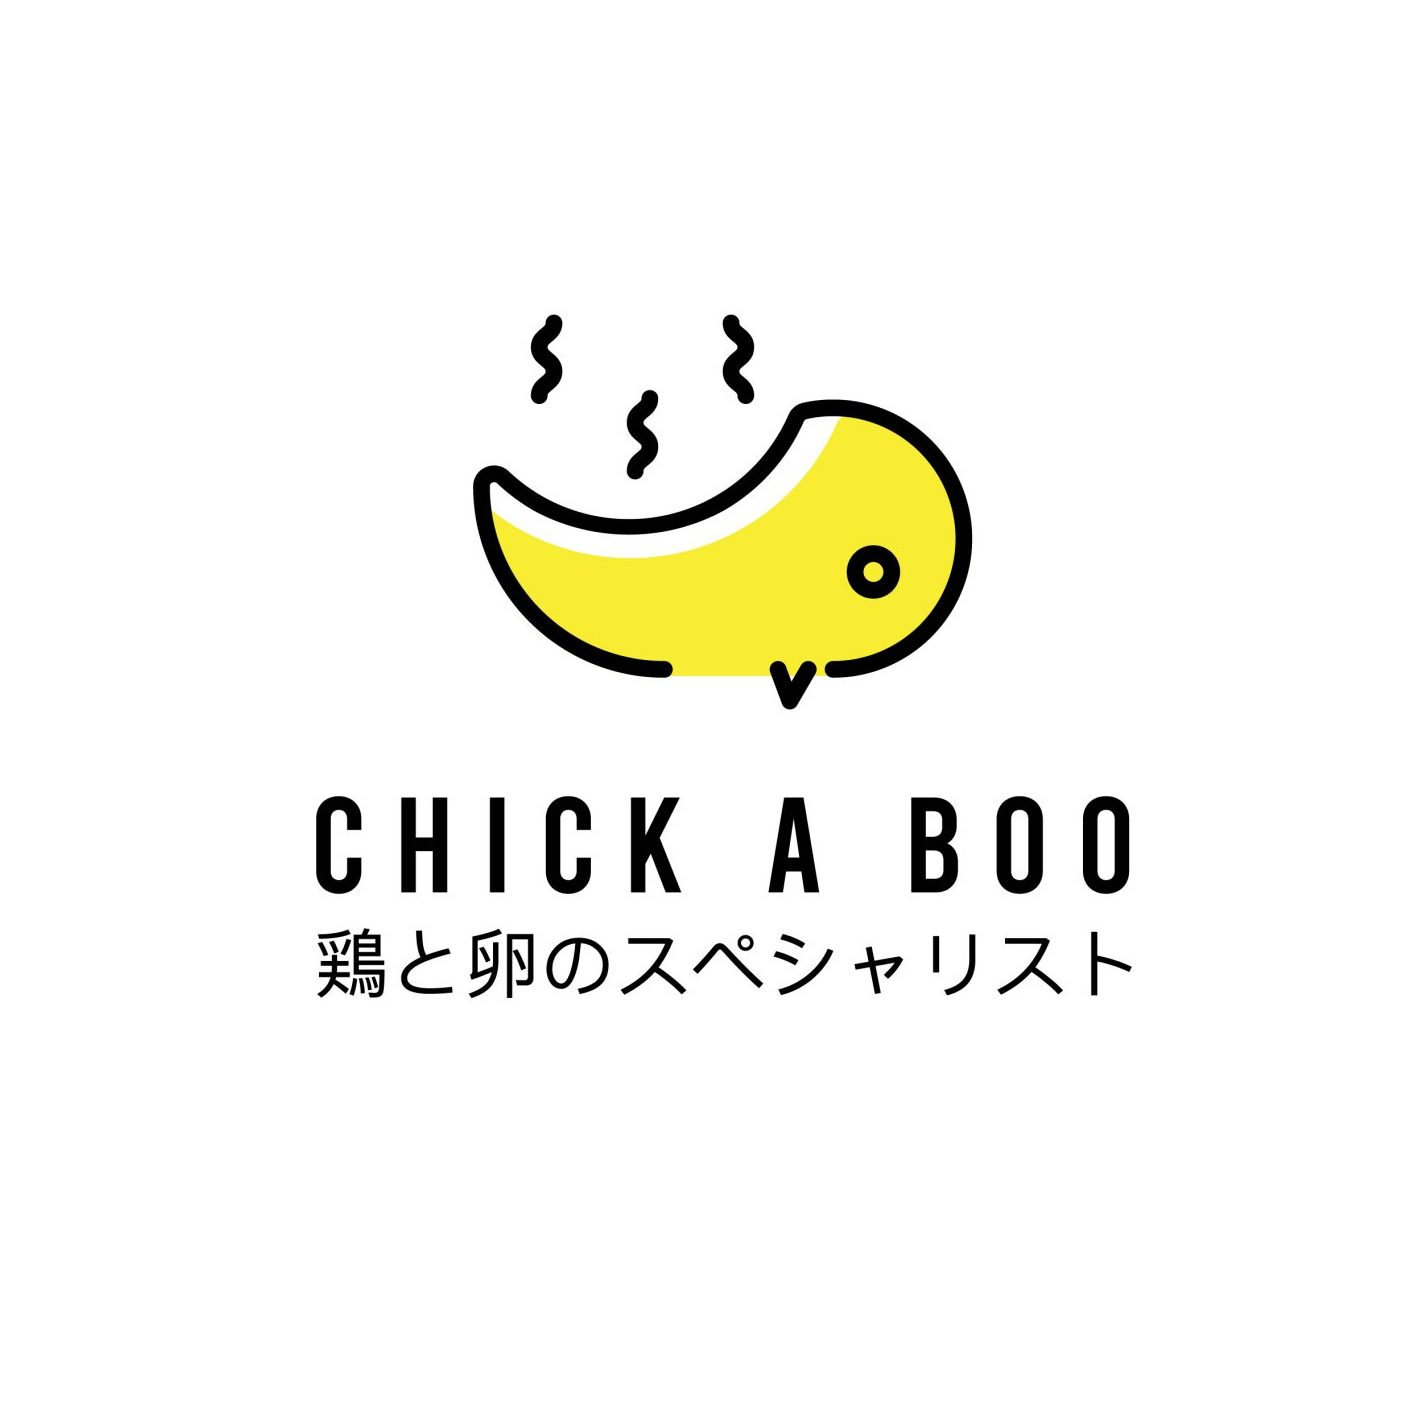 chick a boo after rebranding